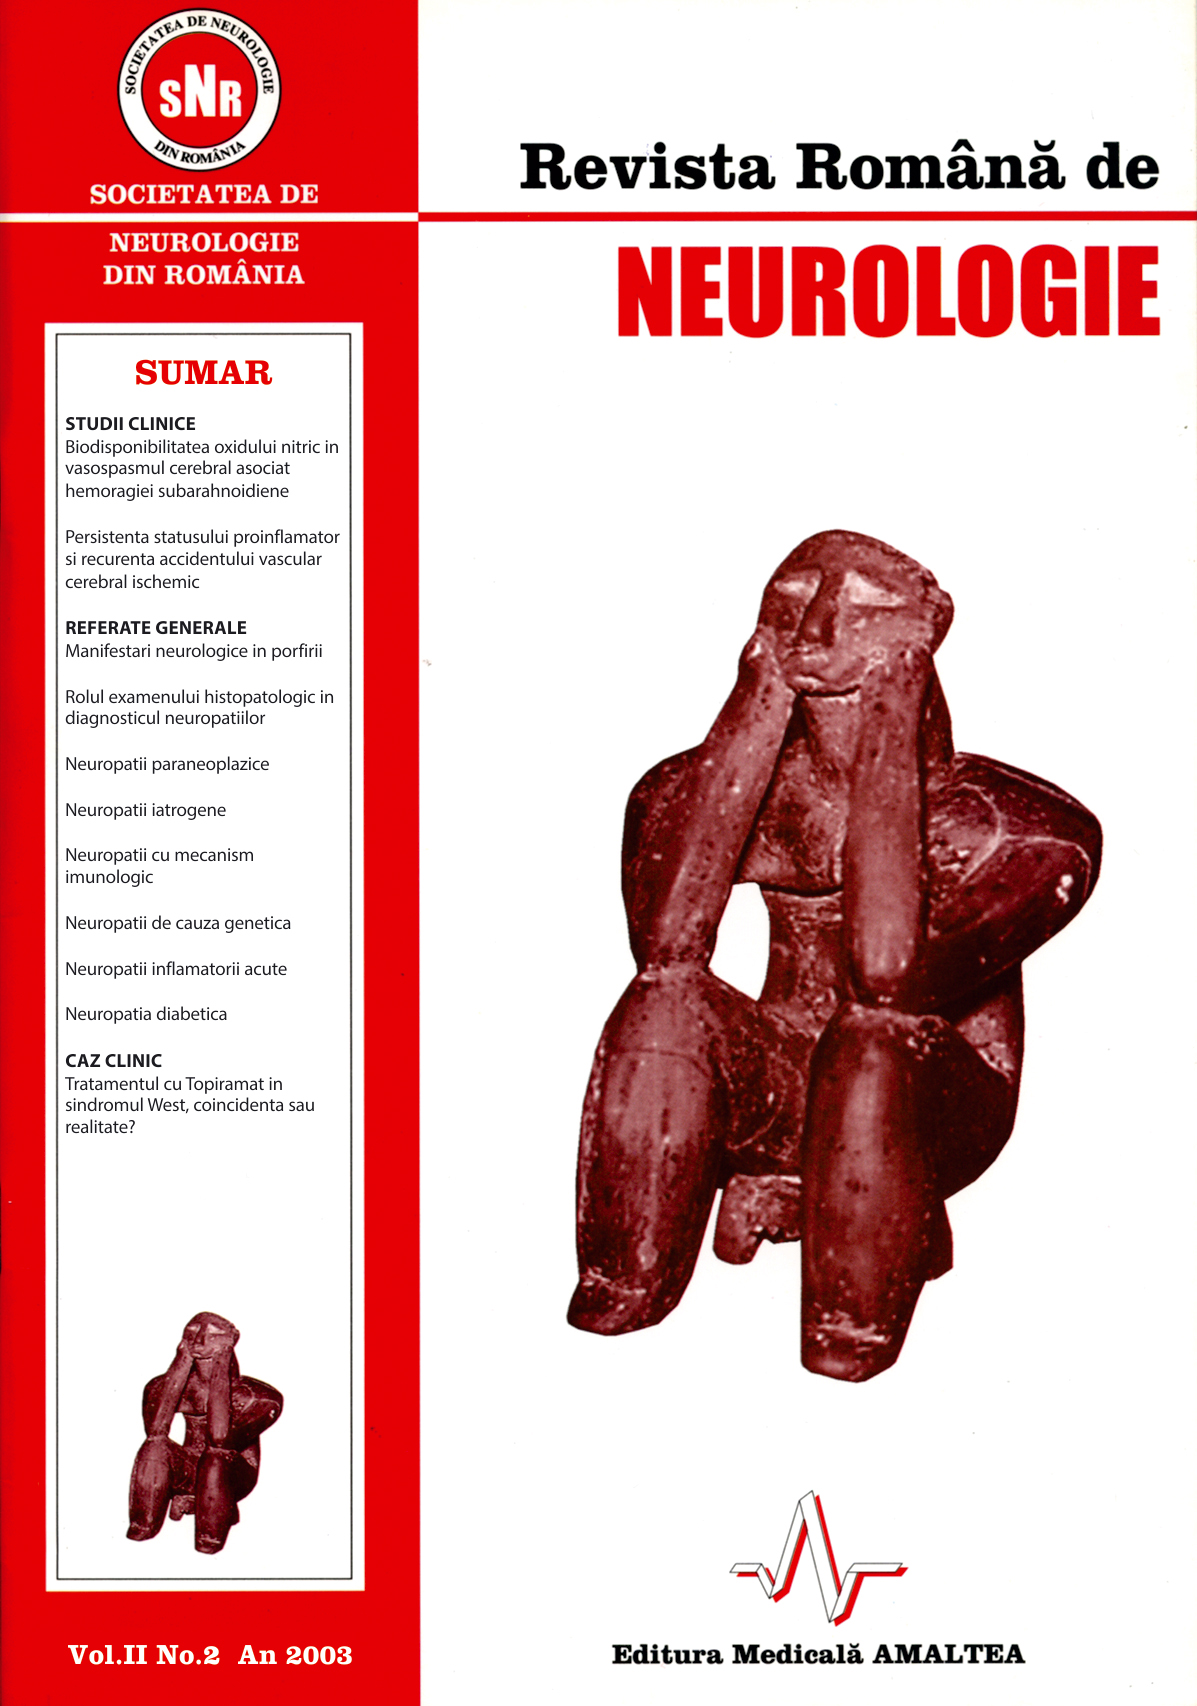 Romanian Journal of Neurology, Volume II, No. 2, 2003